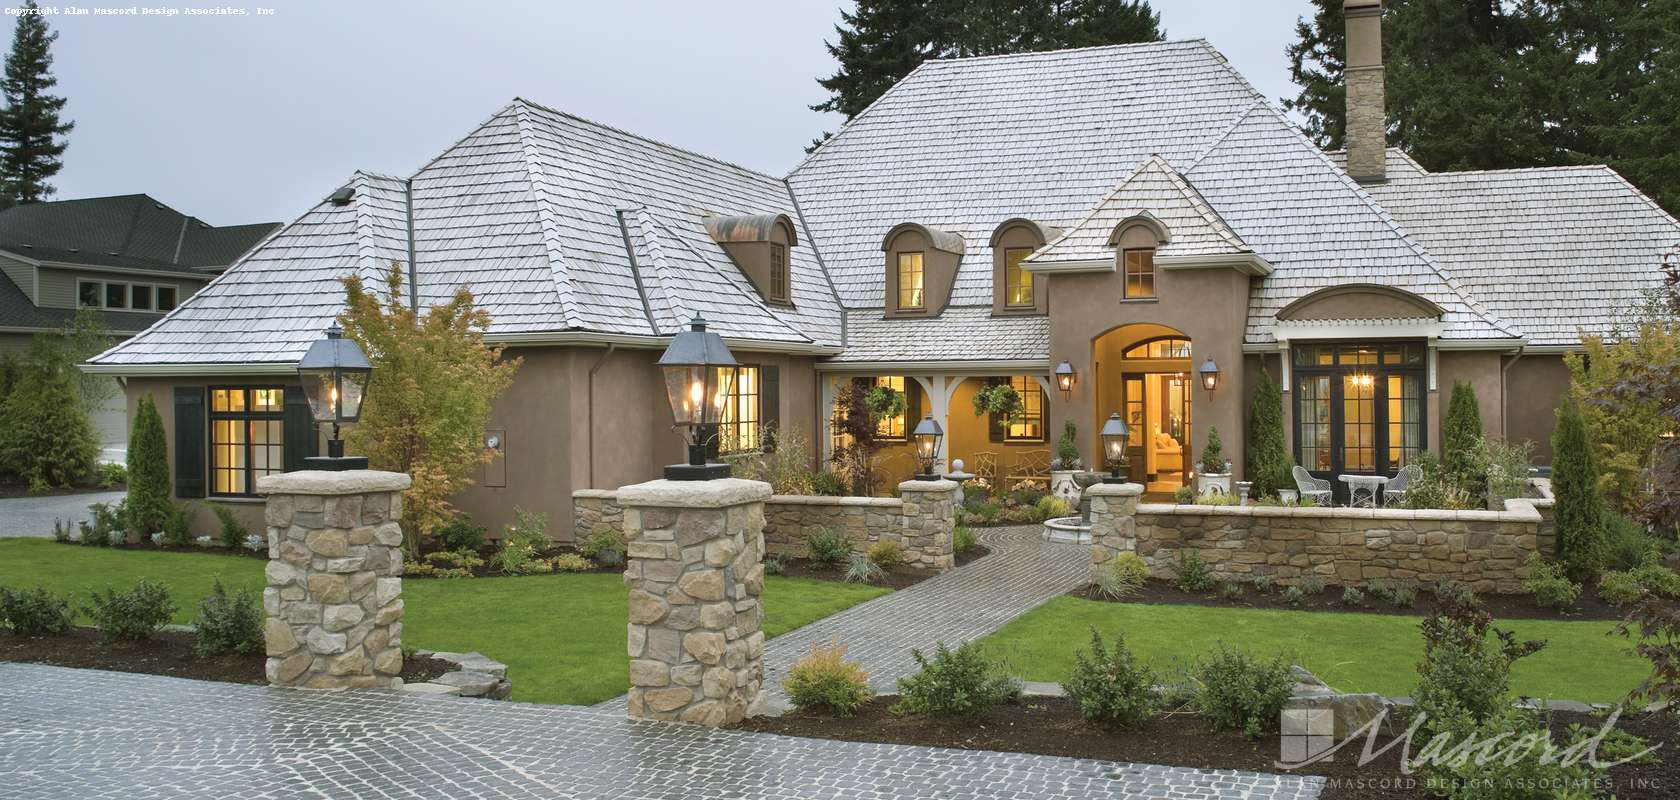 Mascord House Plan 2459: The Terrebonne